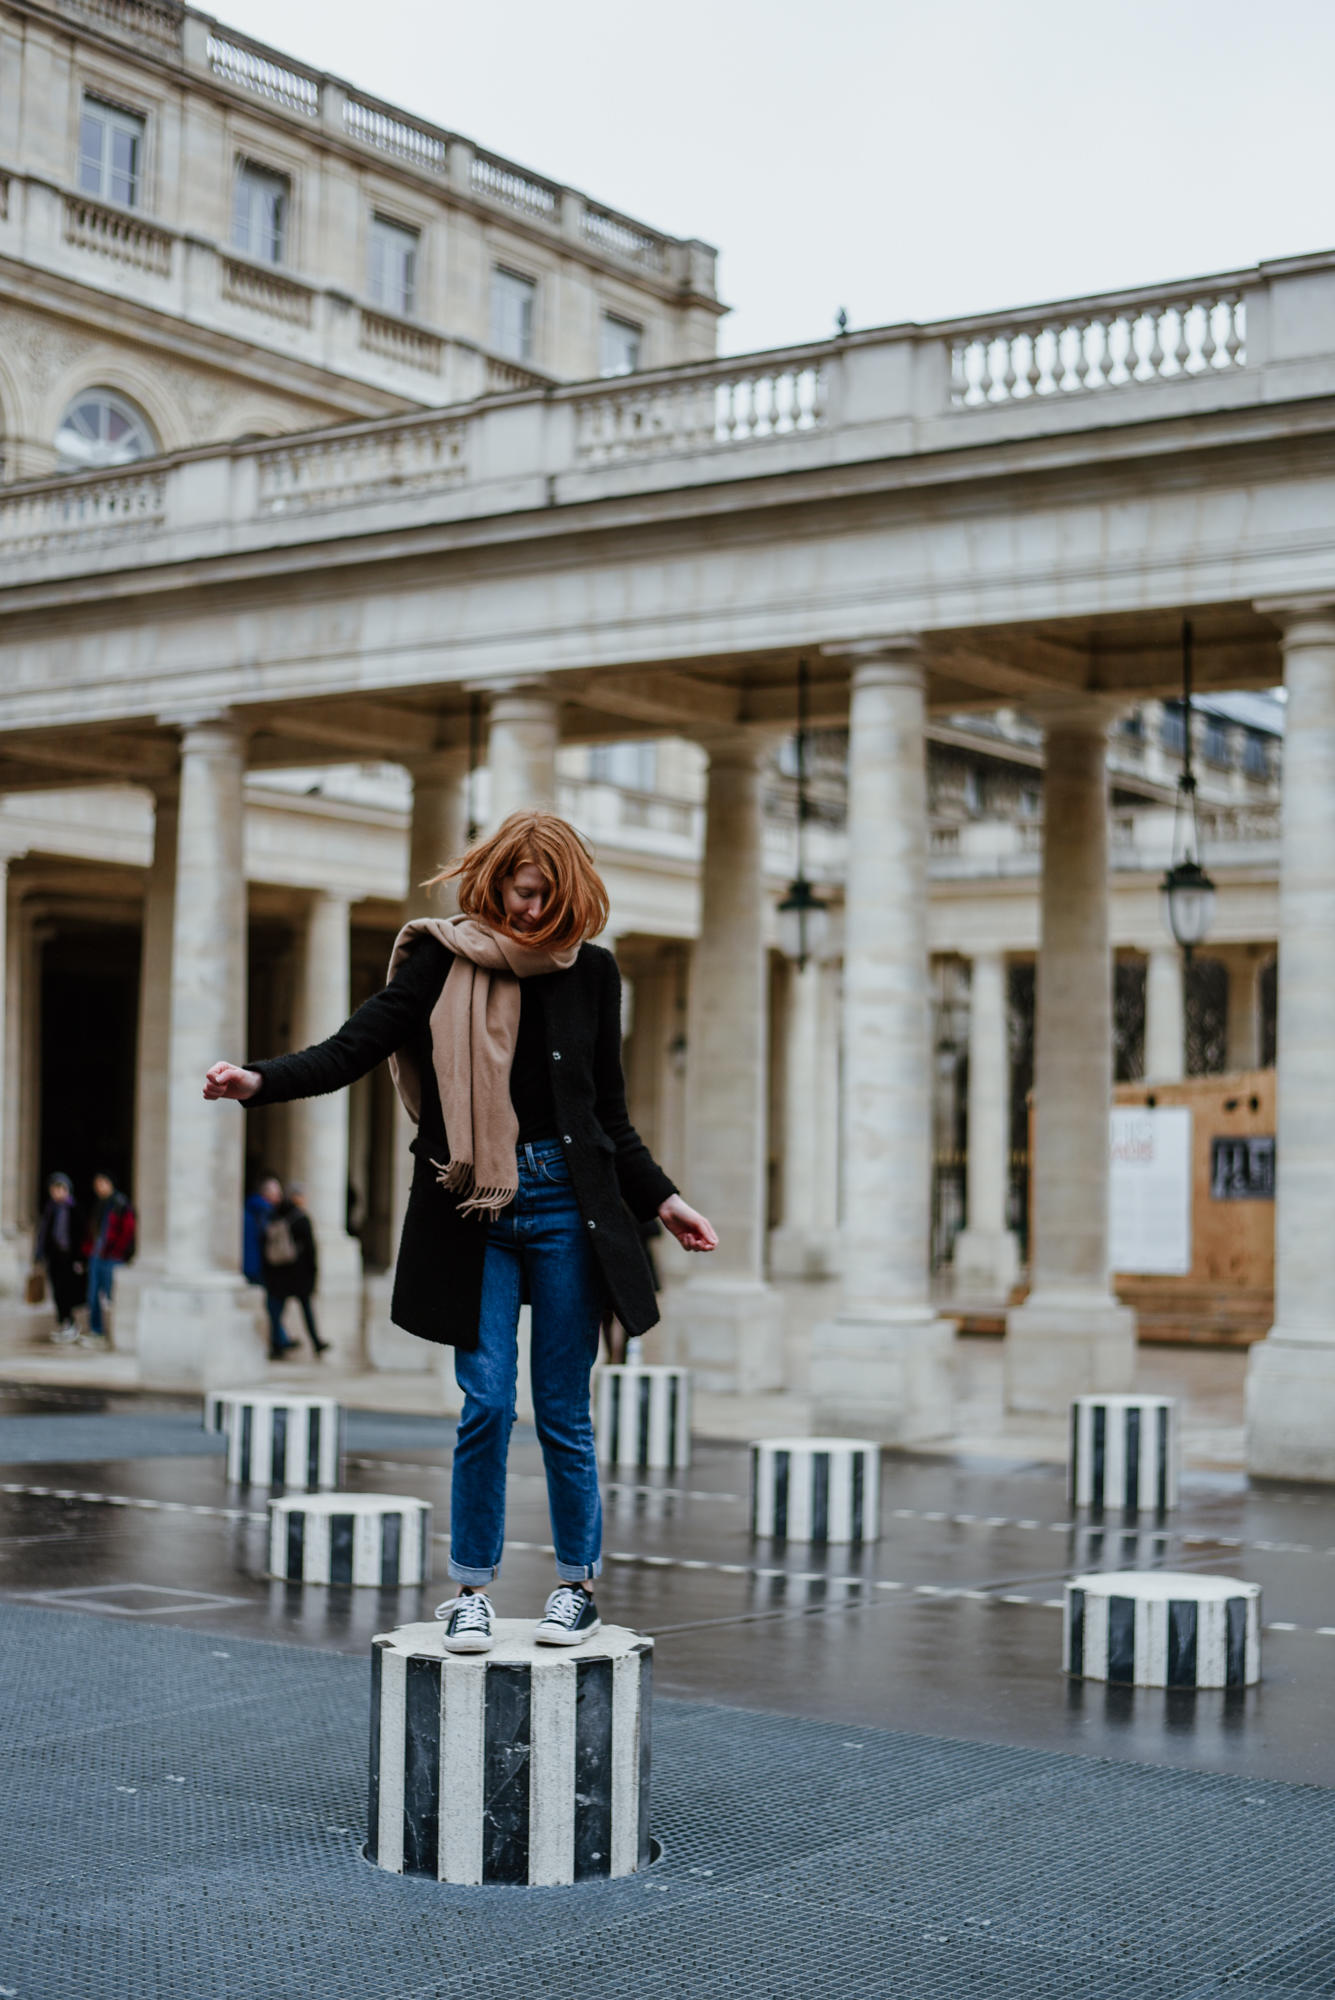 Girl with Les Deux Plateaux Colonnes de Buren at Palais Royal in Paris